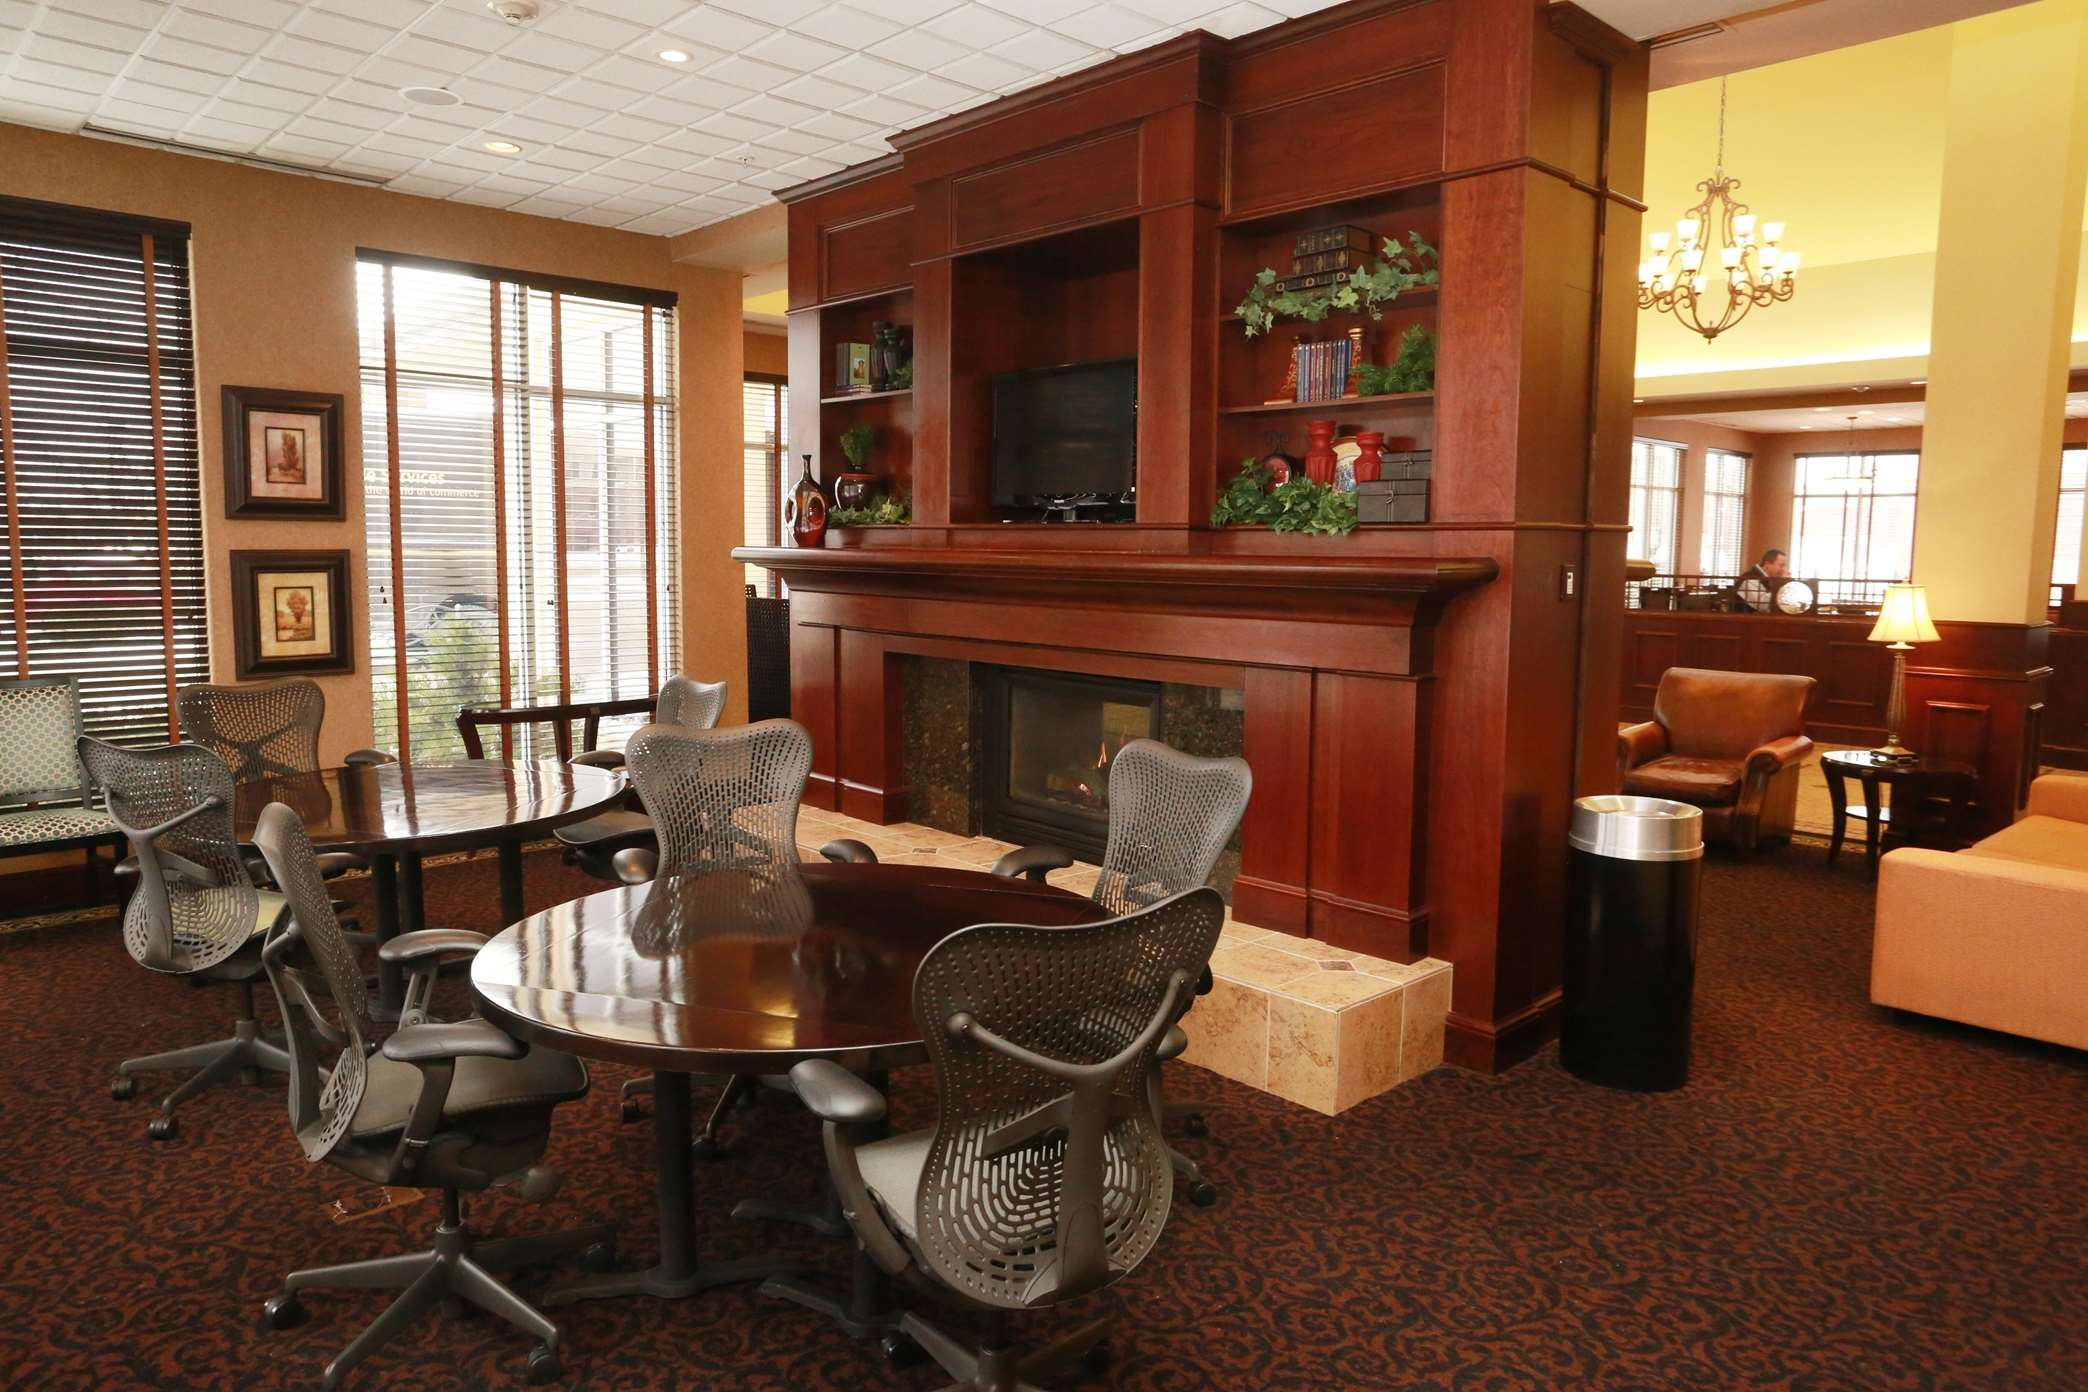 Hilton Garden Inn West Des Moines 205 South 64th Street West Des ...